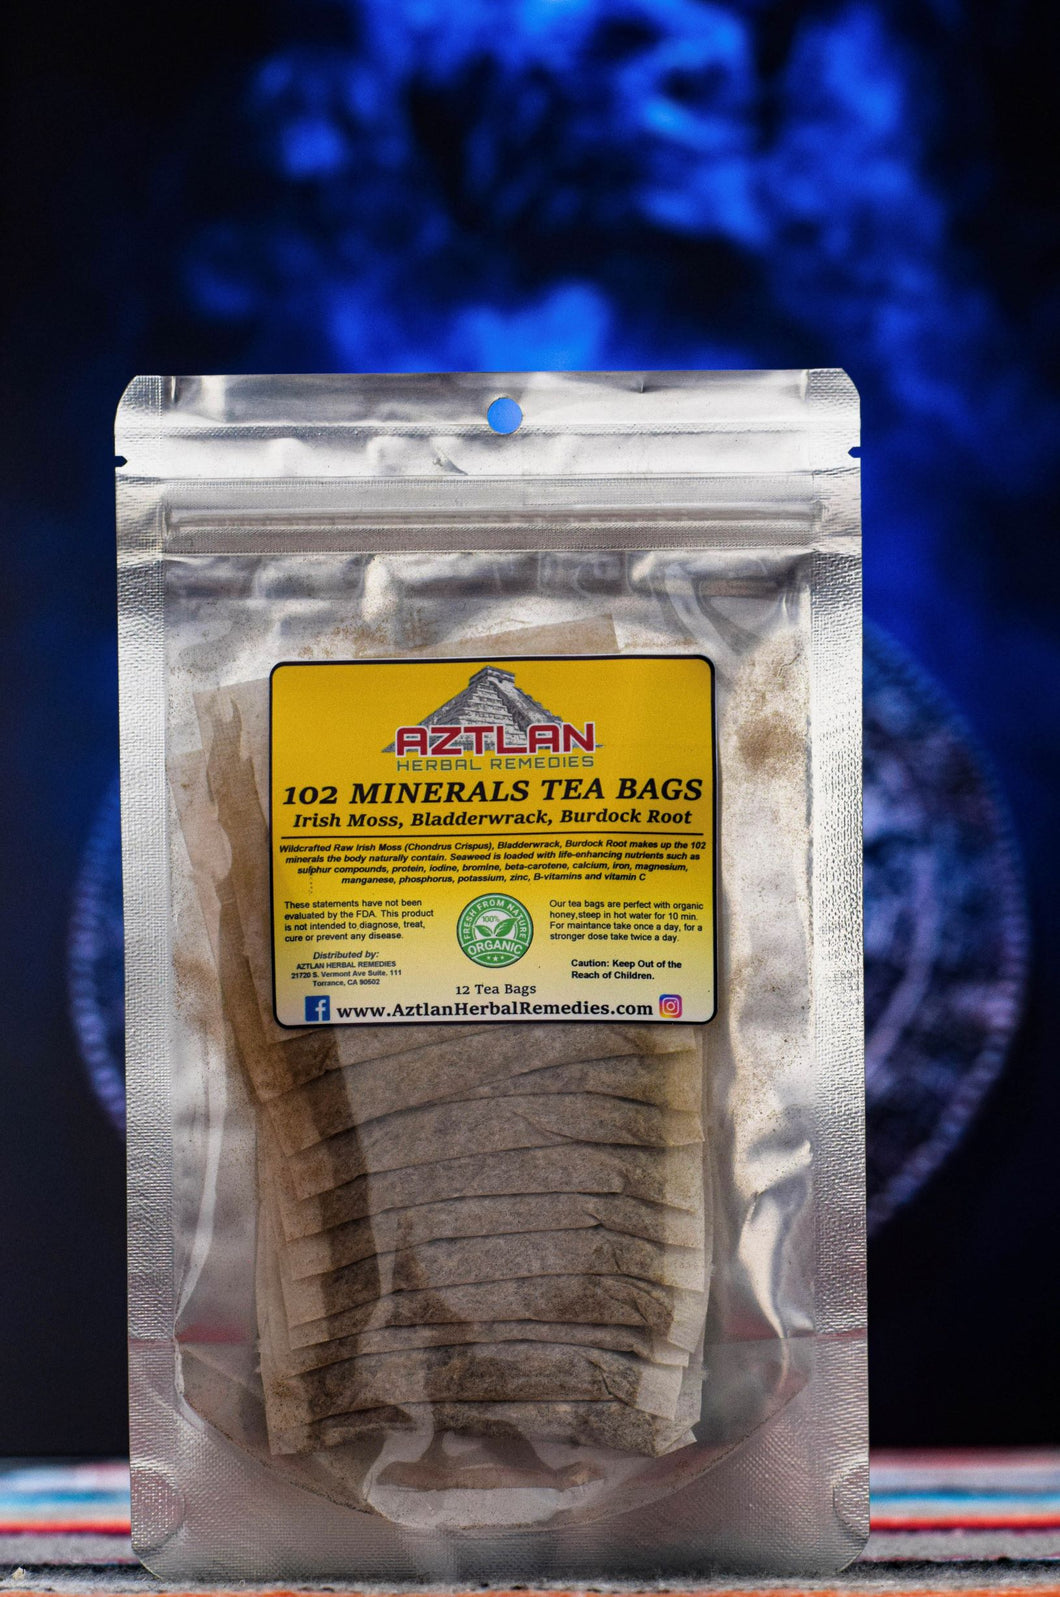 102 Mineral Teabags - Burdock Root Herbal Tea | Aztlan Herbal Remedies